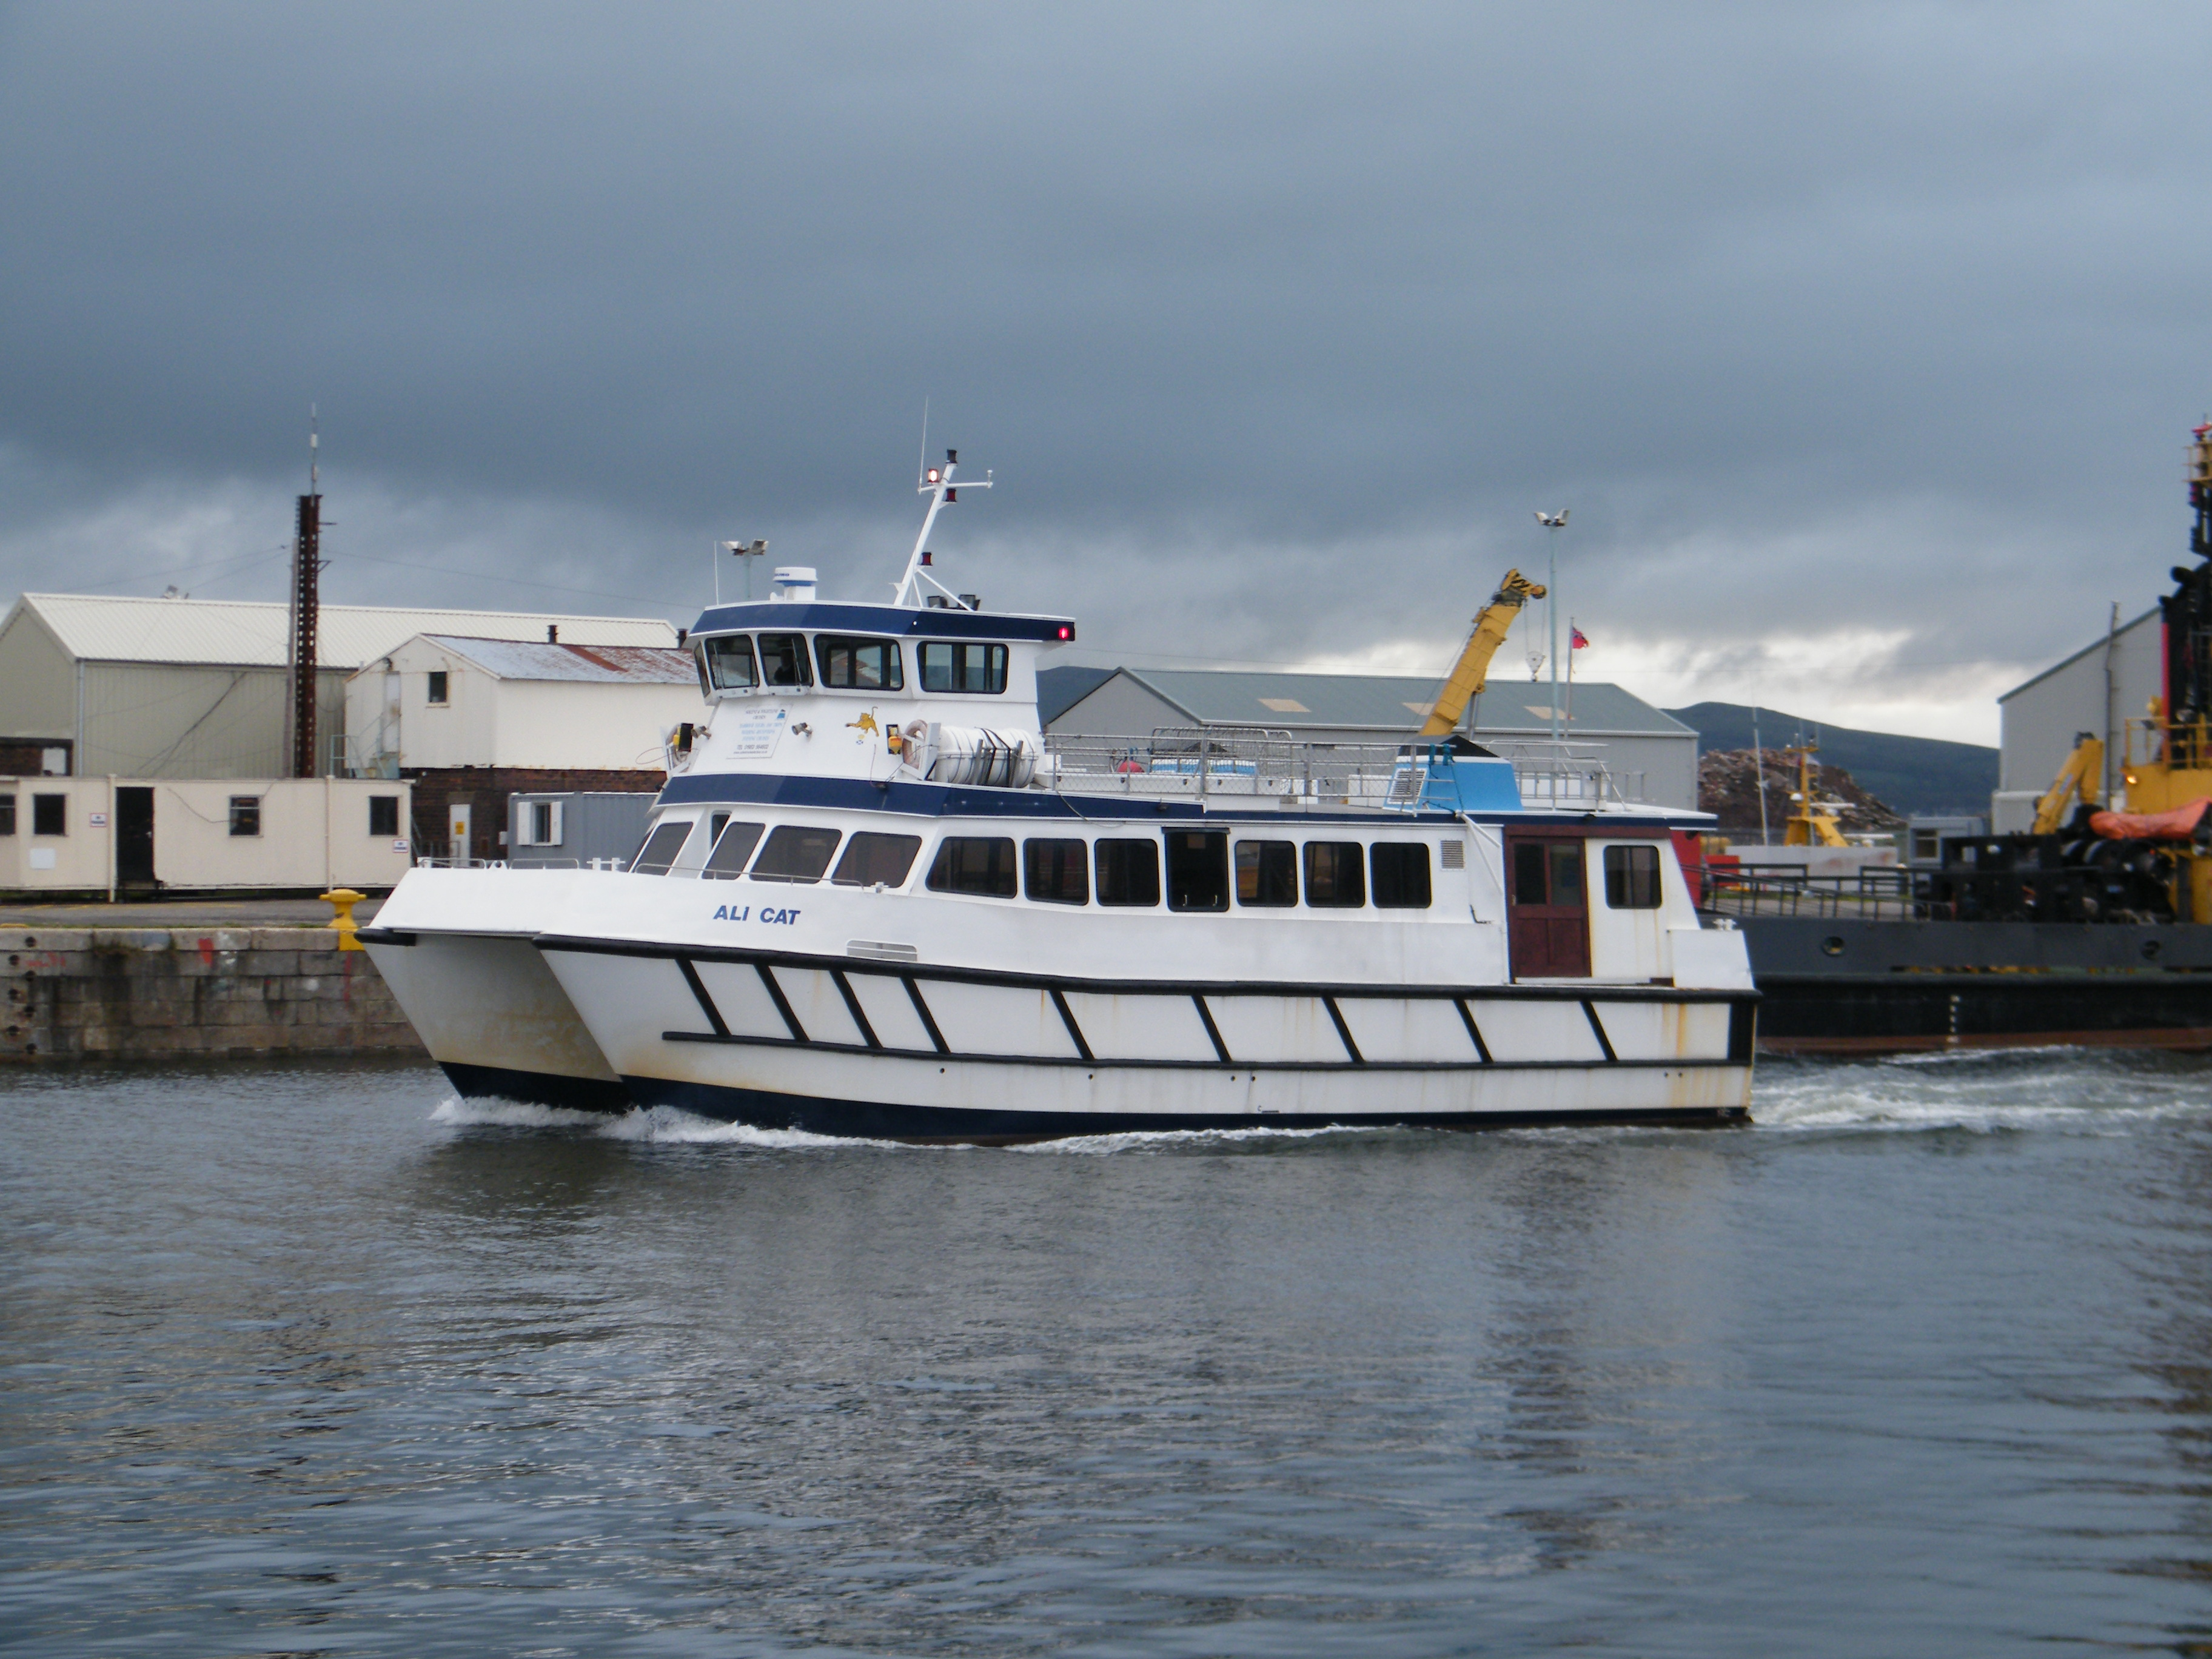 Ali Cat in original colours leaving the James Watt Dock for service (Ships of CalMac)